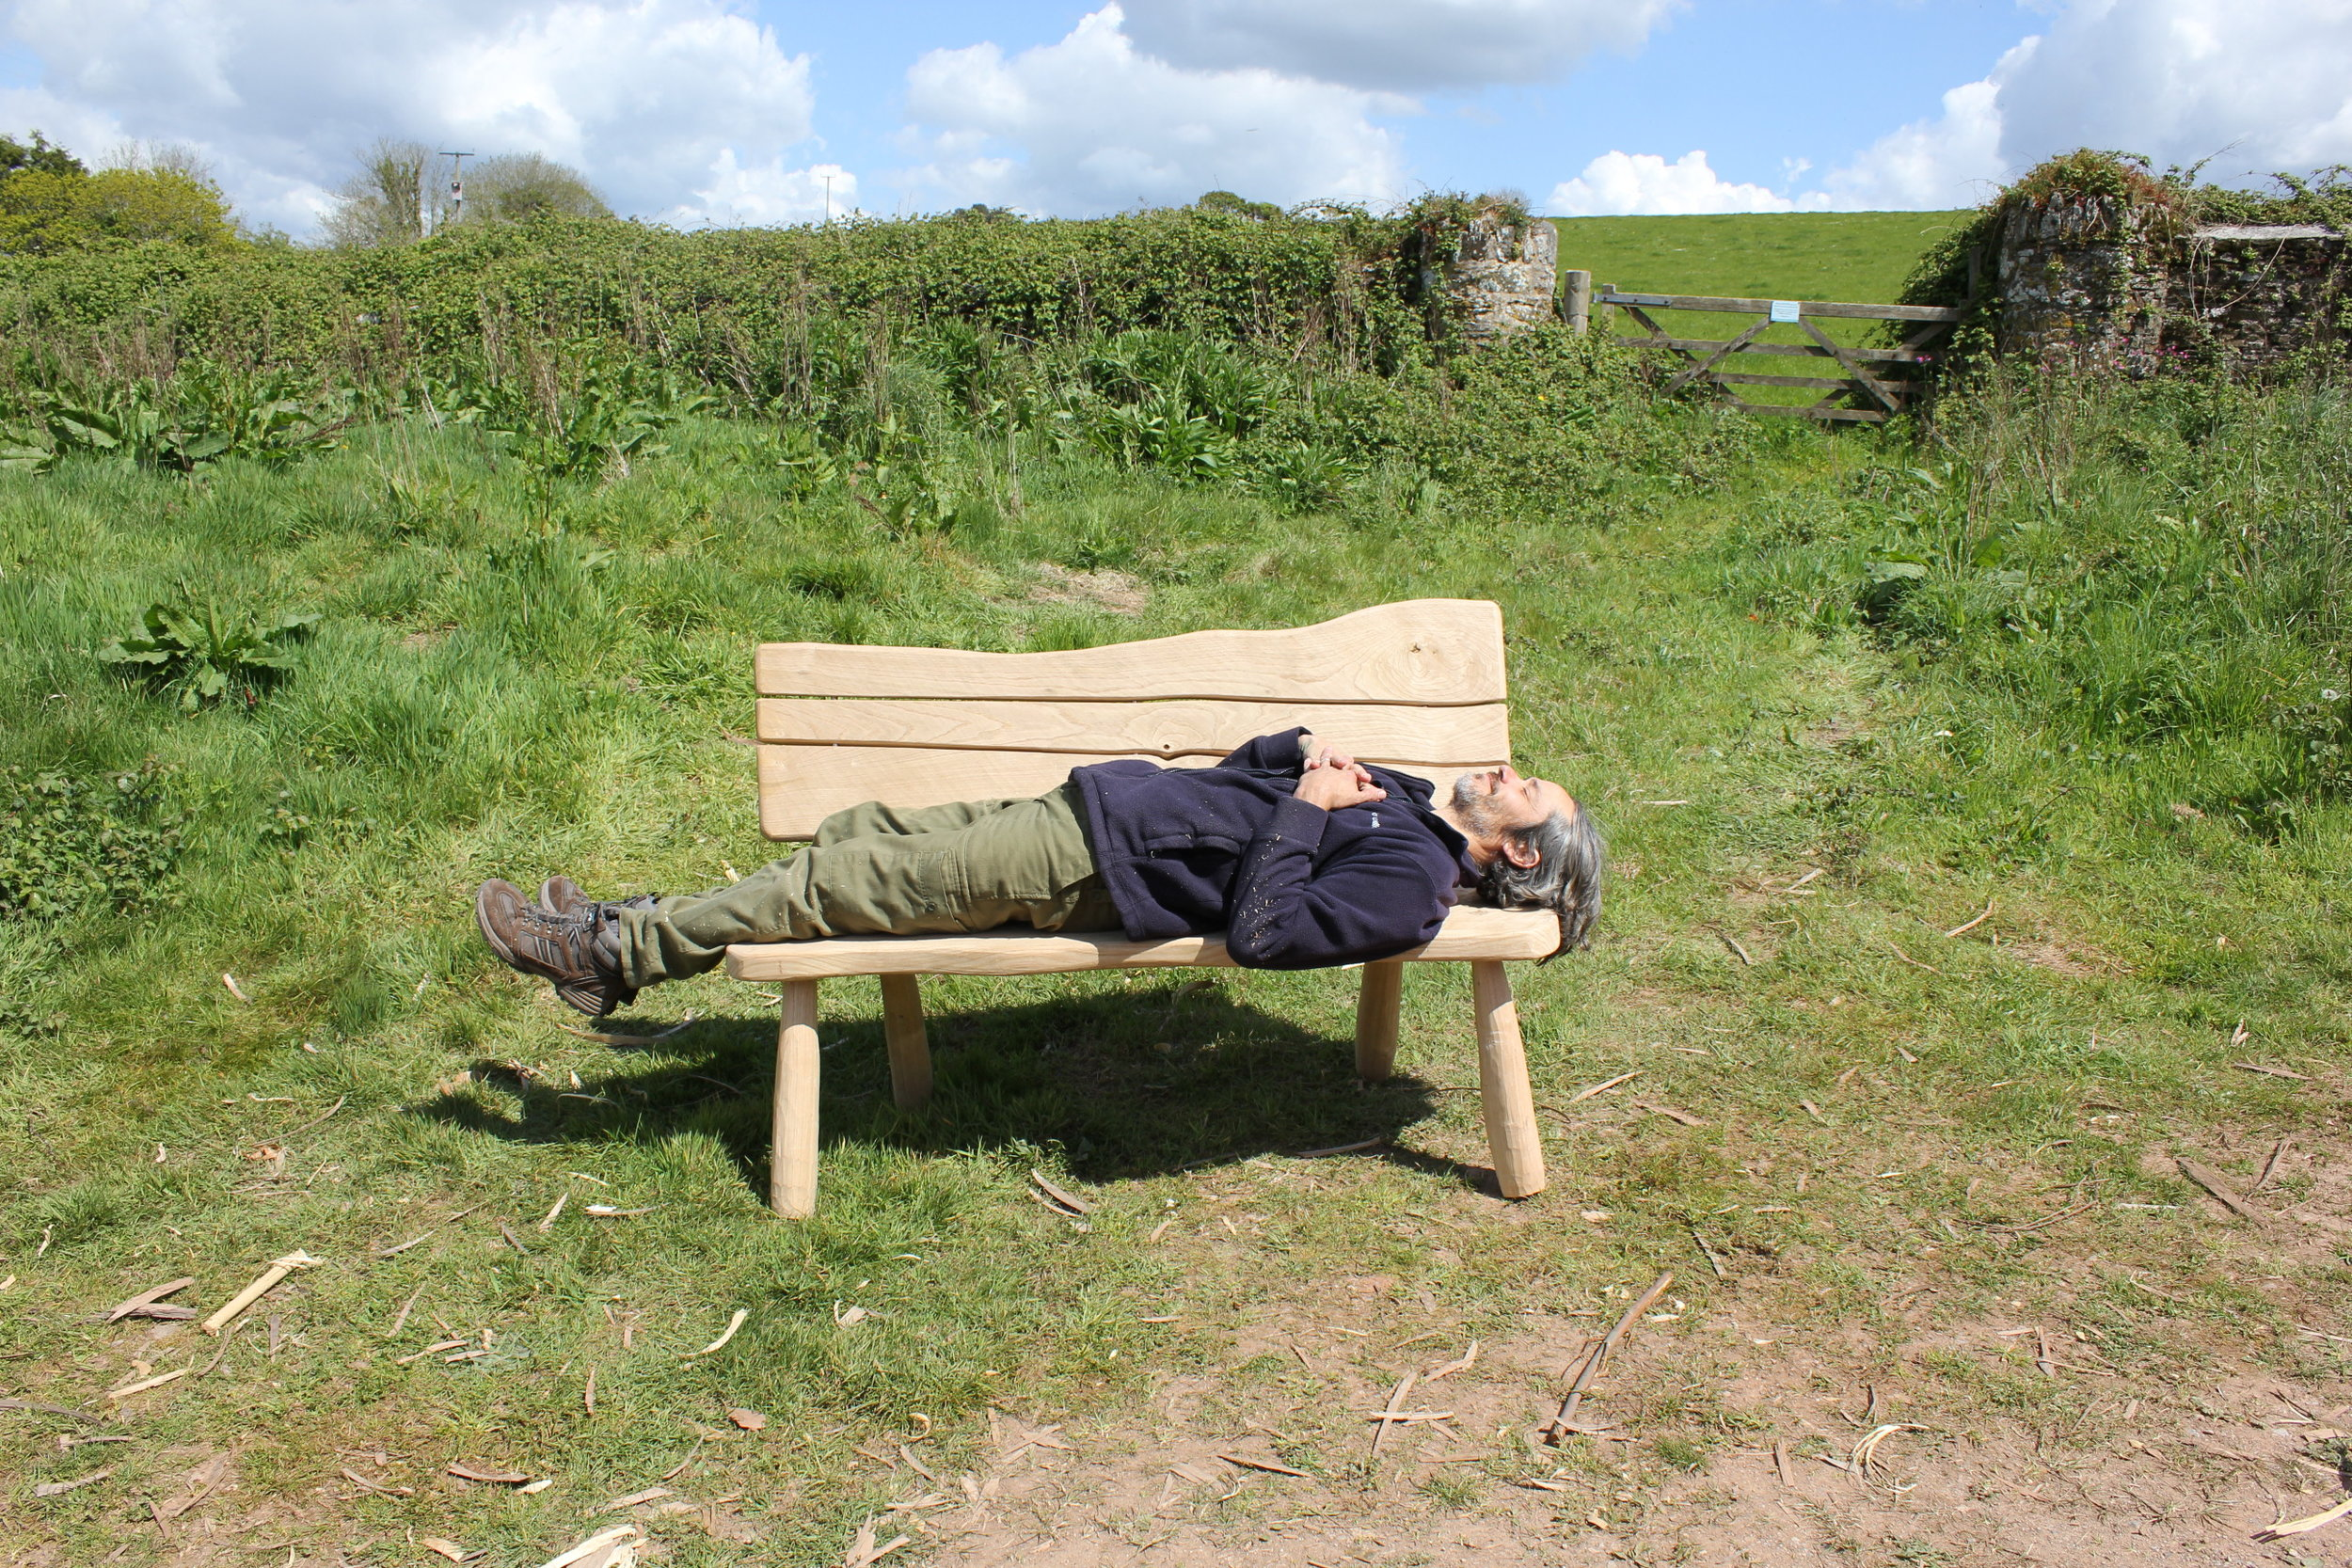 Richard enjoying a well-earned 5 minute nap on his sweet chestnut slab backed bench. This is a prototype for future benches at Rame Head woods.